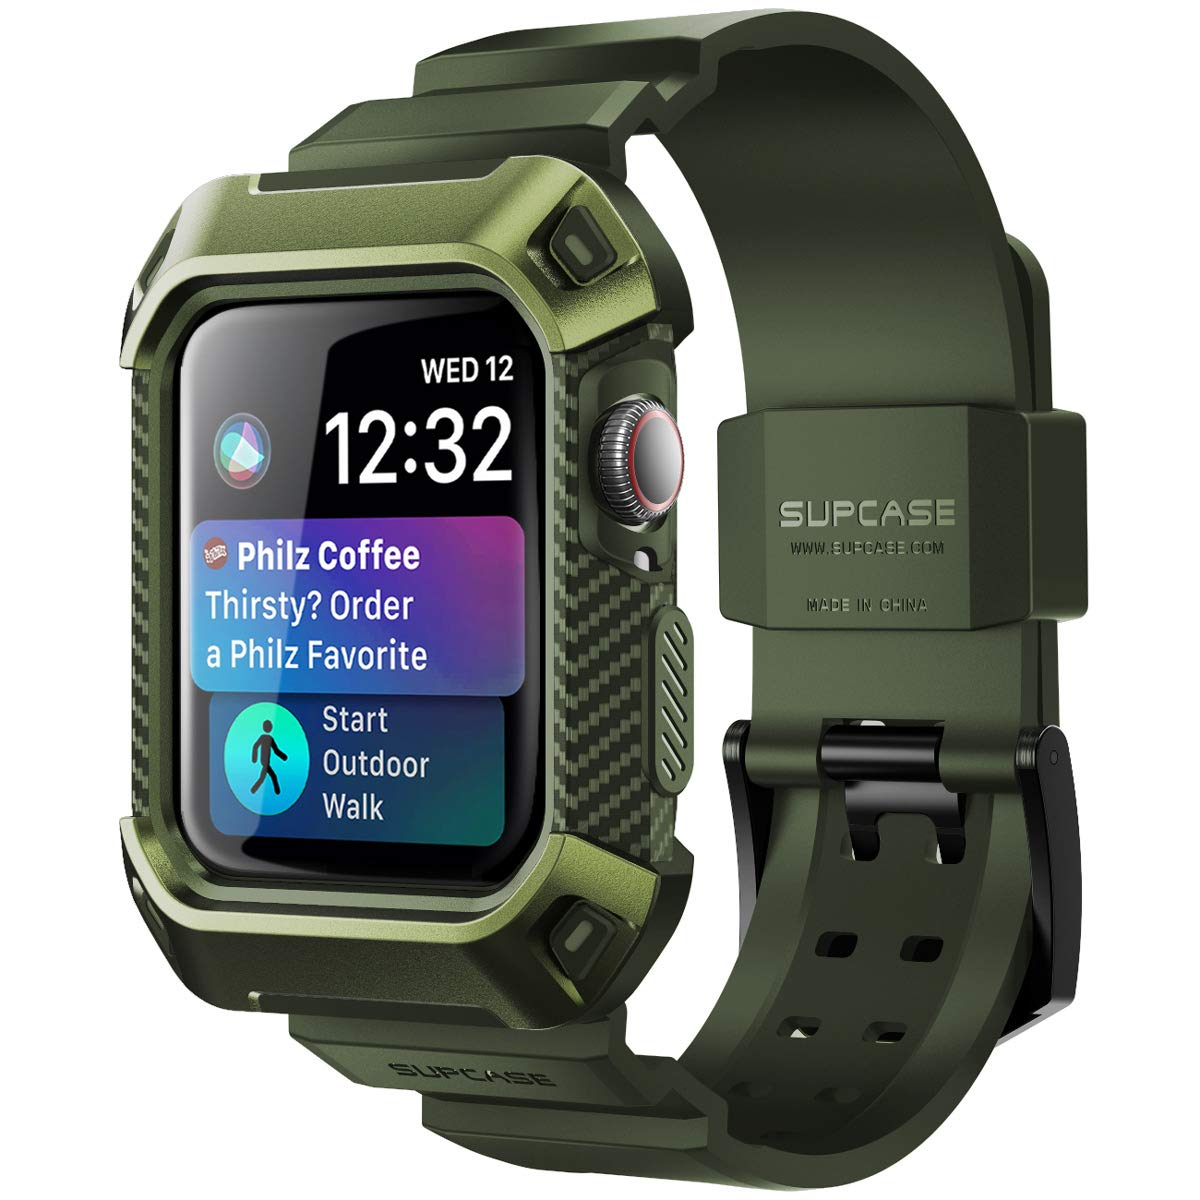 SUPCASE [Unicorn Beetle Pro] Rugged Protective Case for Apple Watch 4, with Strap Bands for Apple Watch Series 4 [44mm] 2018 Edition (DarkGreen)